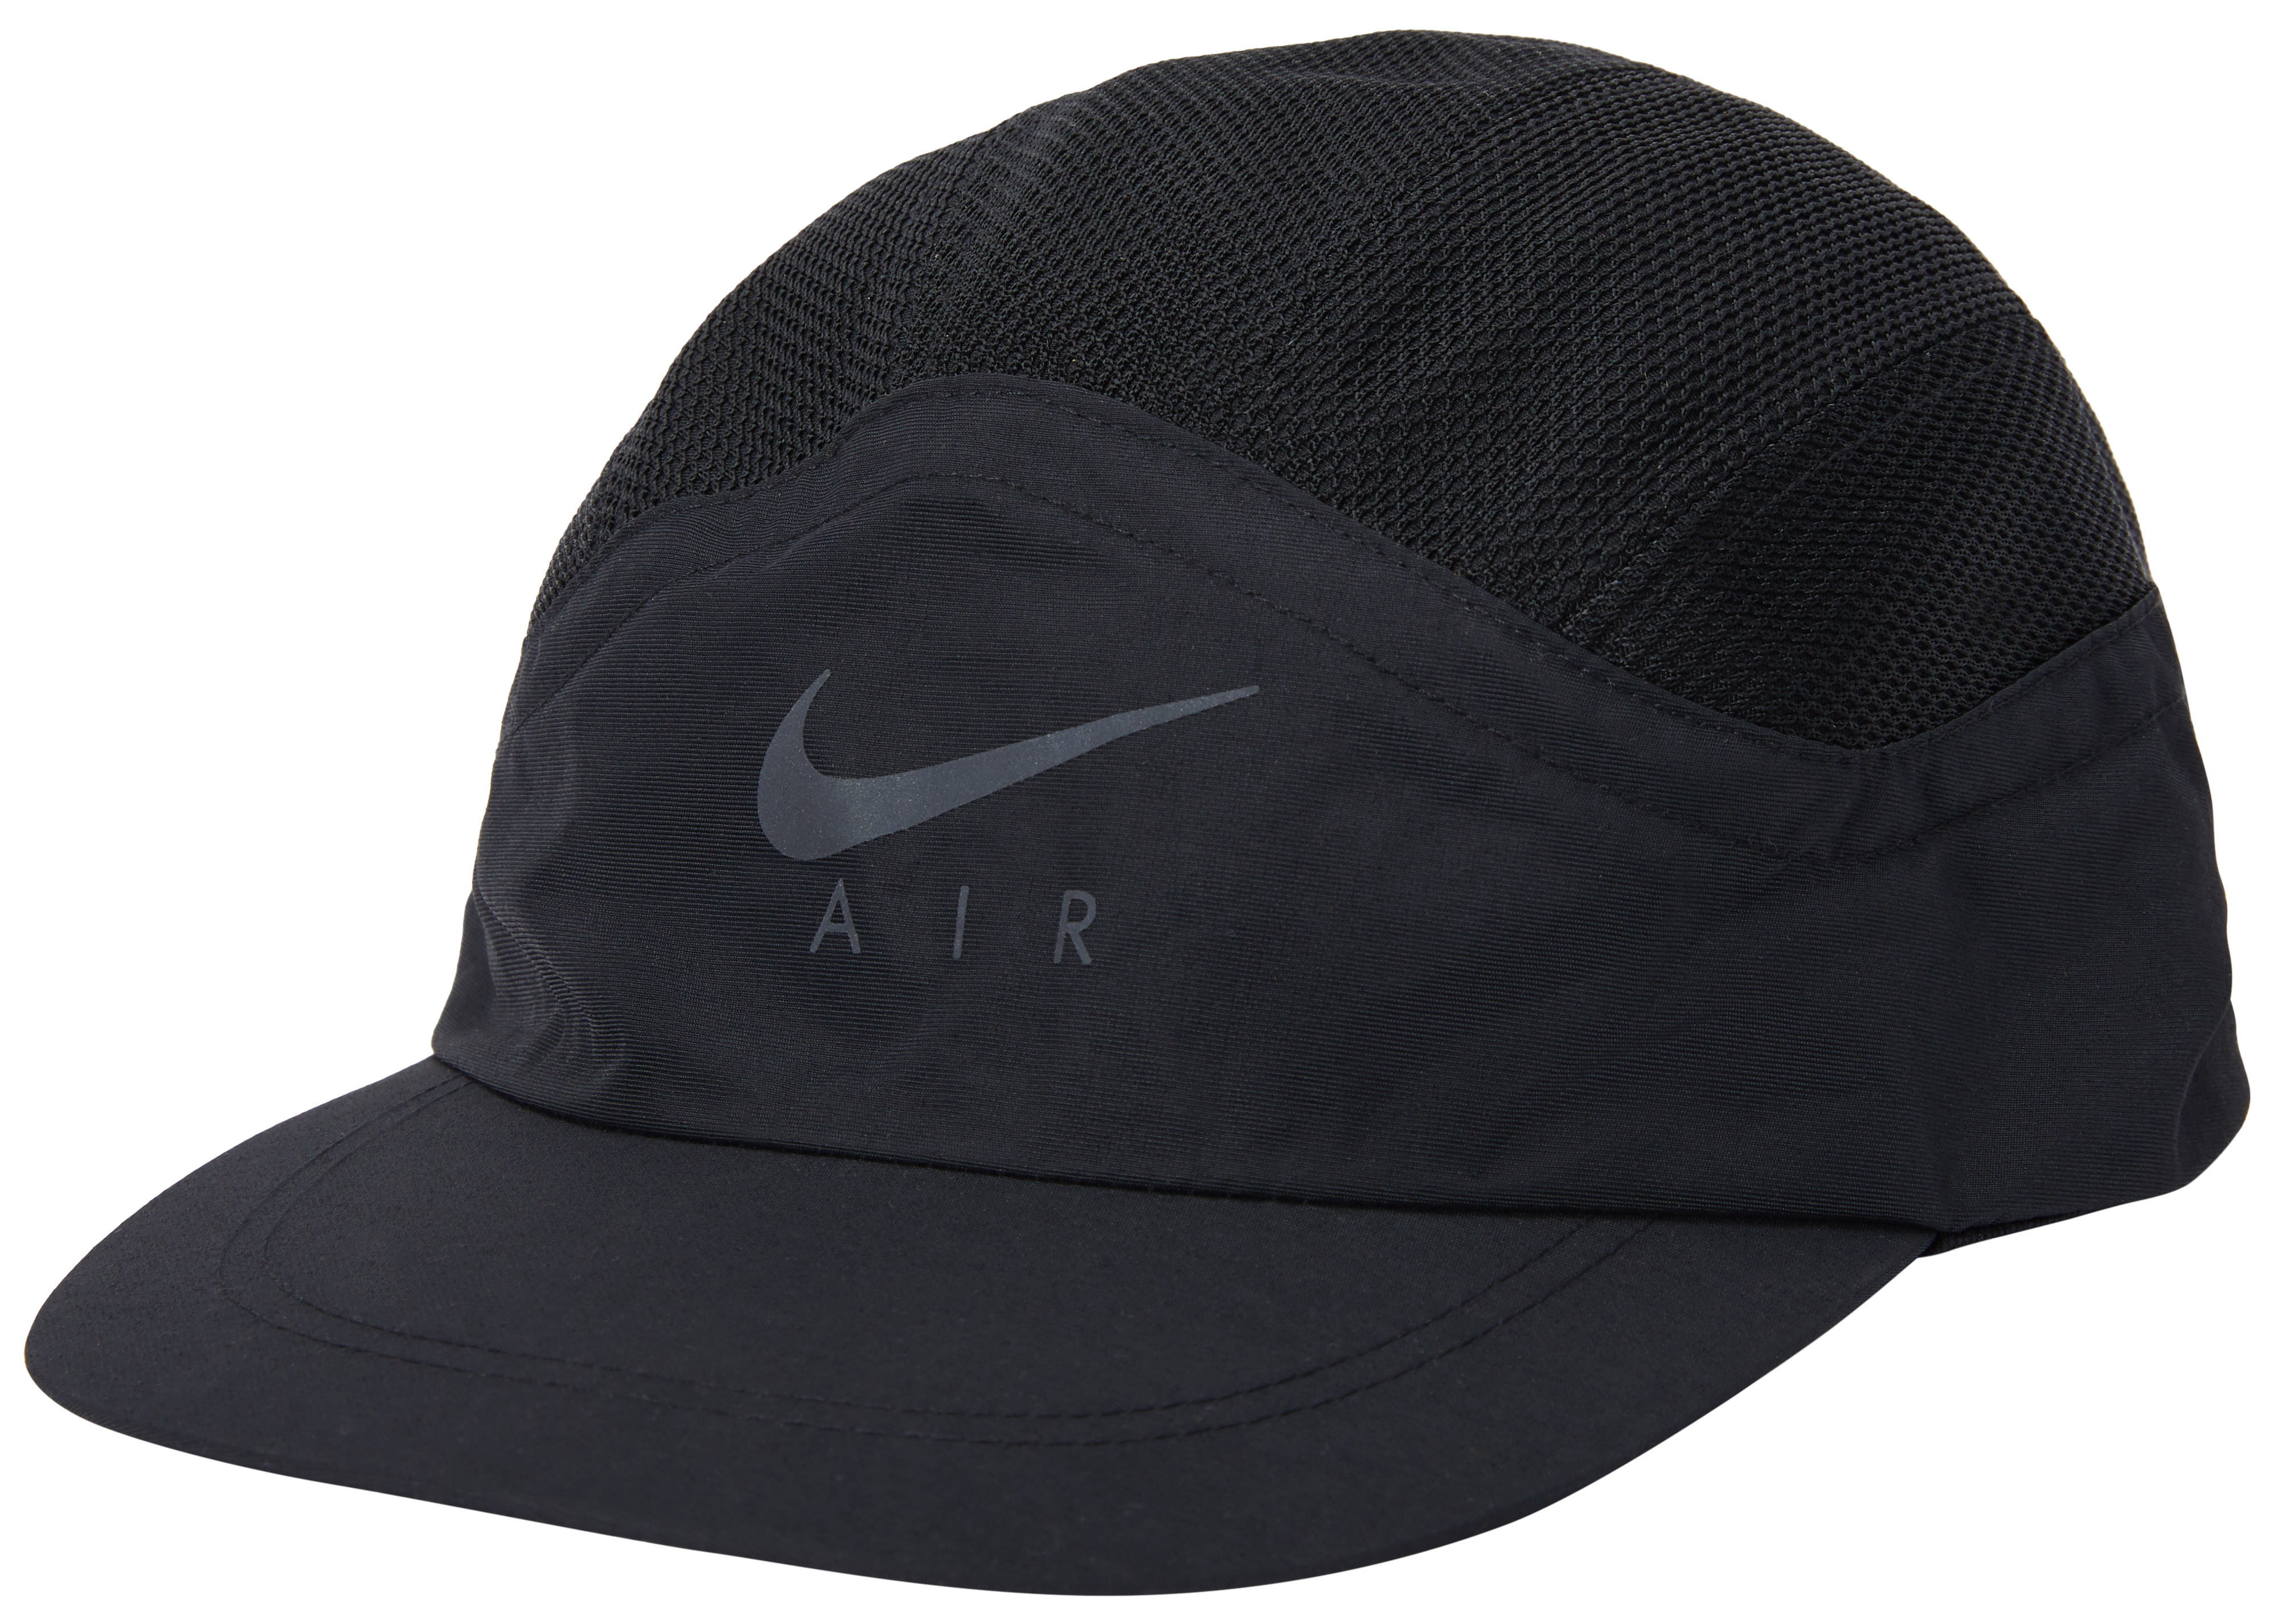 02e86e447504b store nike aerobill elite running hat womens black black c61e6 7a0e6  where  can i buy supreme nike trail running hat black fw17 d1dda 246b4